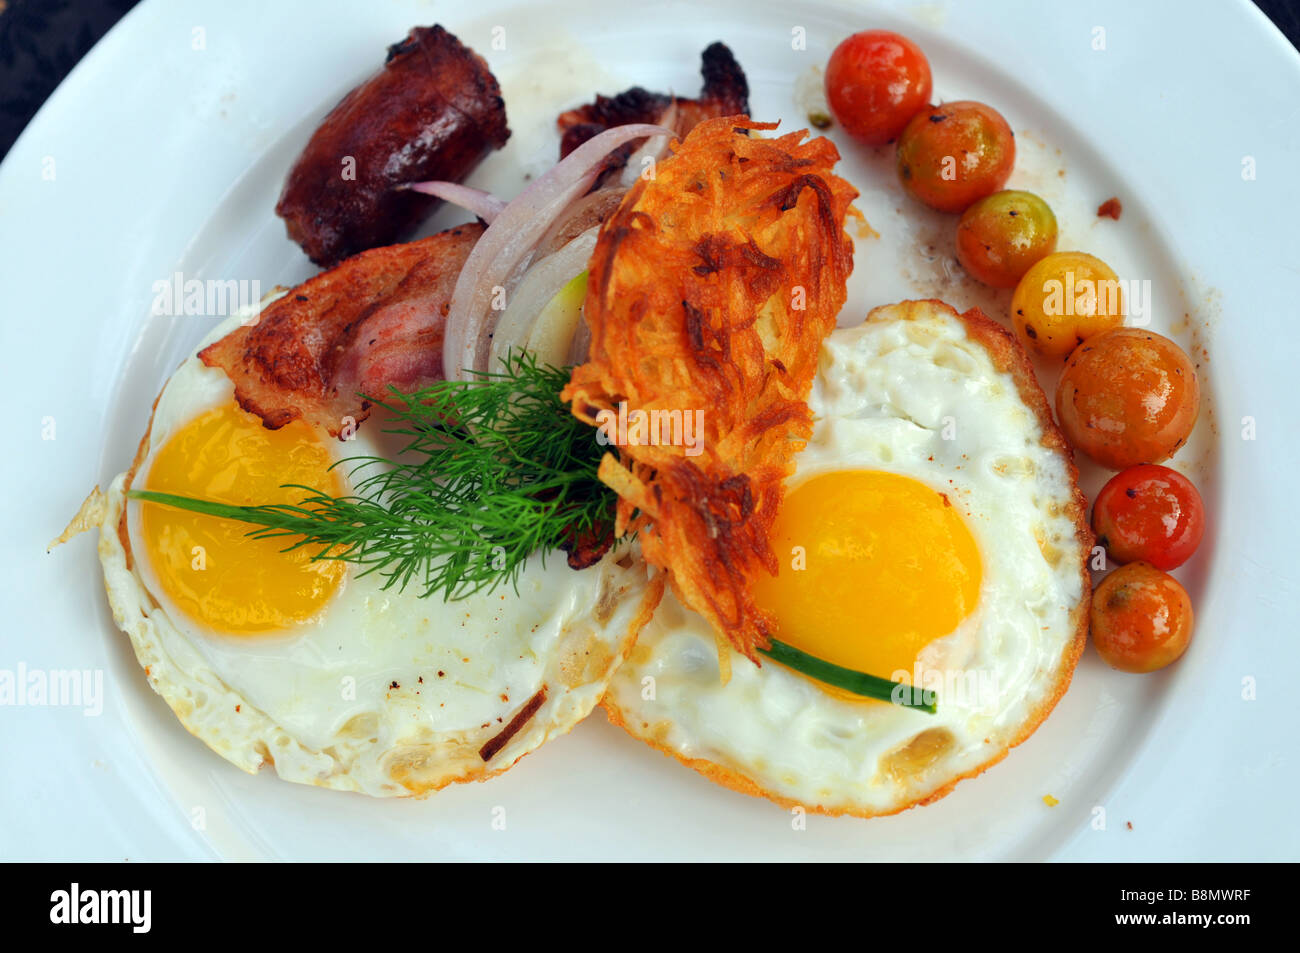 Breakfast, plate of fried eggs, bacon sausage and tomato - Stock Image